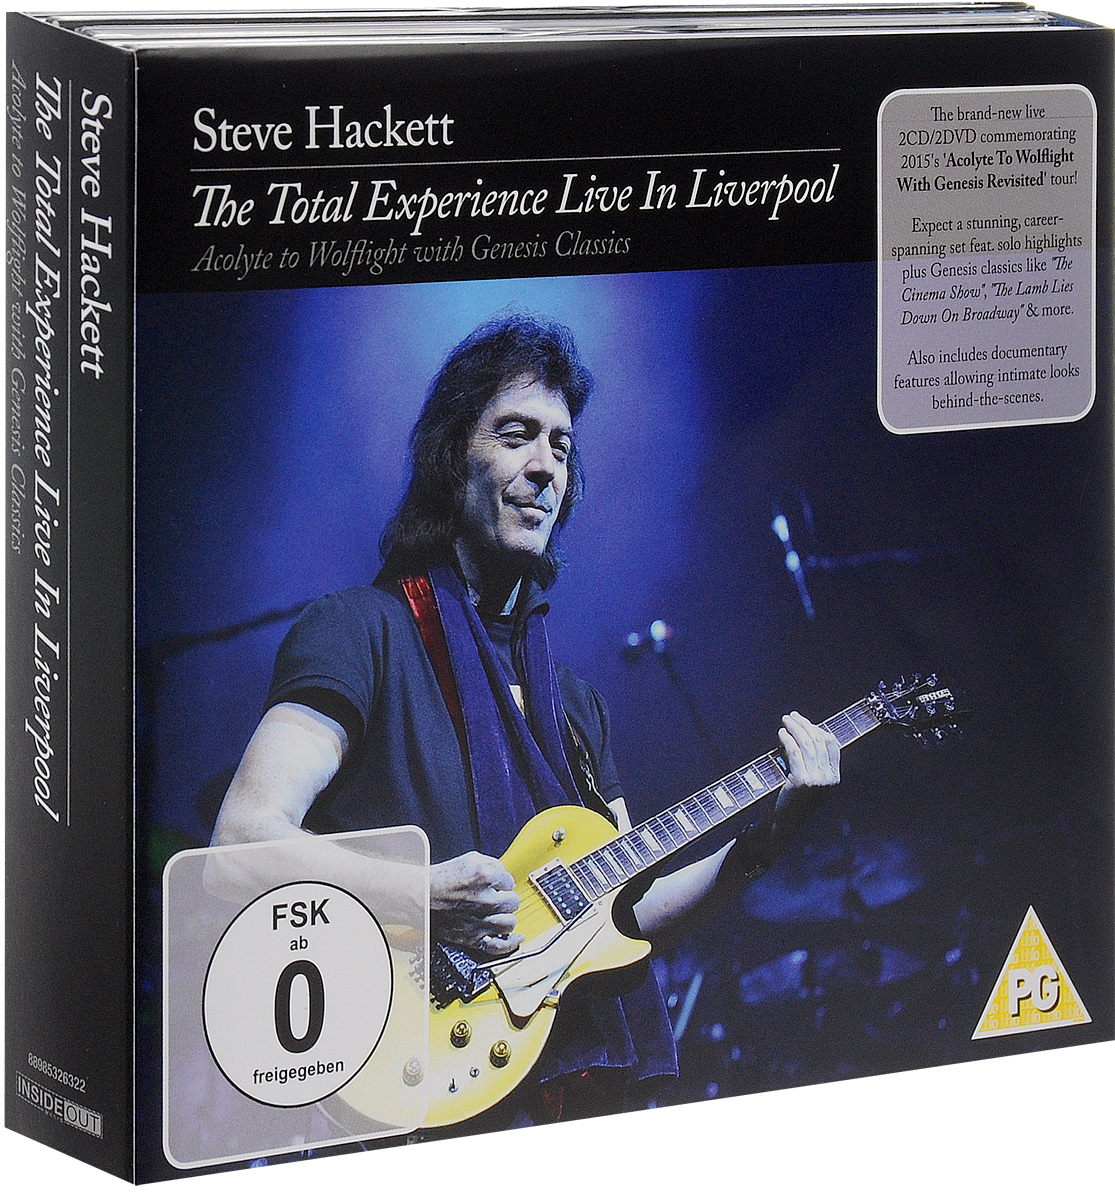 Steve Hackett. The Total Experience Live In Liverpool (2 CD + 2 DVD)